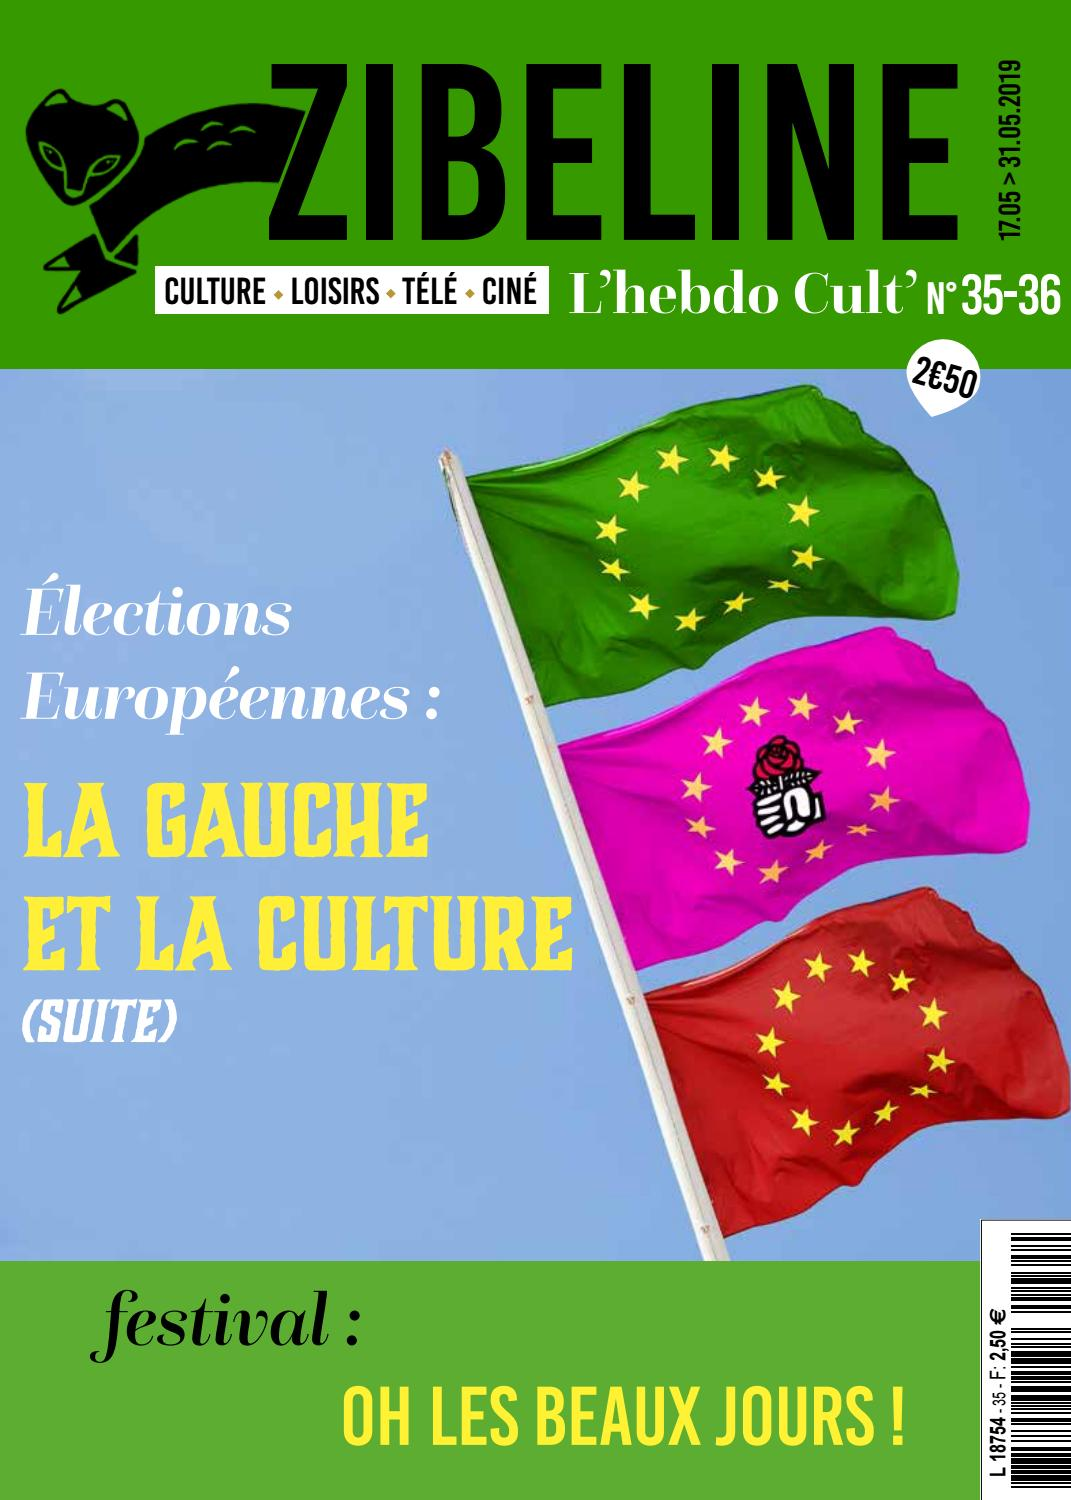 Zibelinel'hebdo Zibeline cult'35 36 issuu by journal Iyvmb7Ygf6